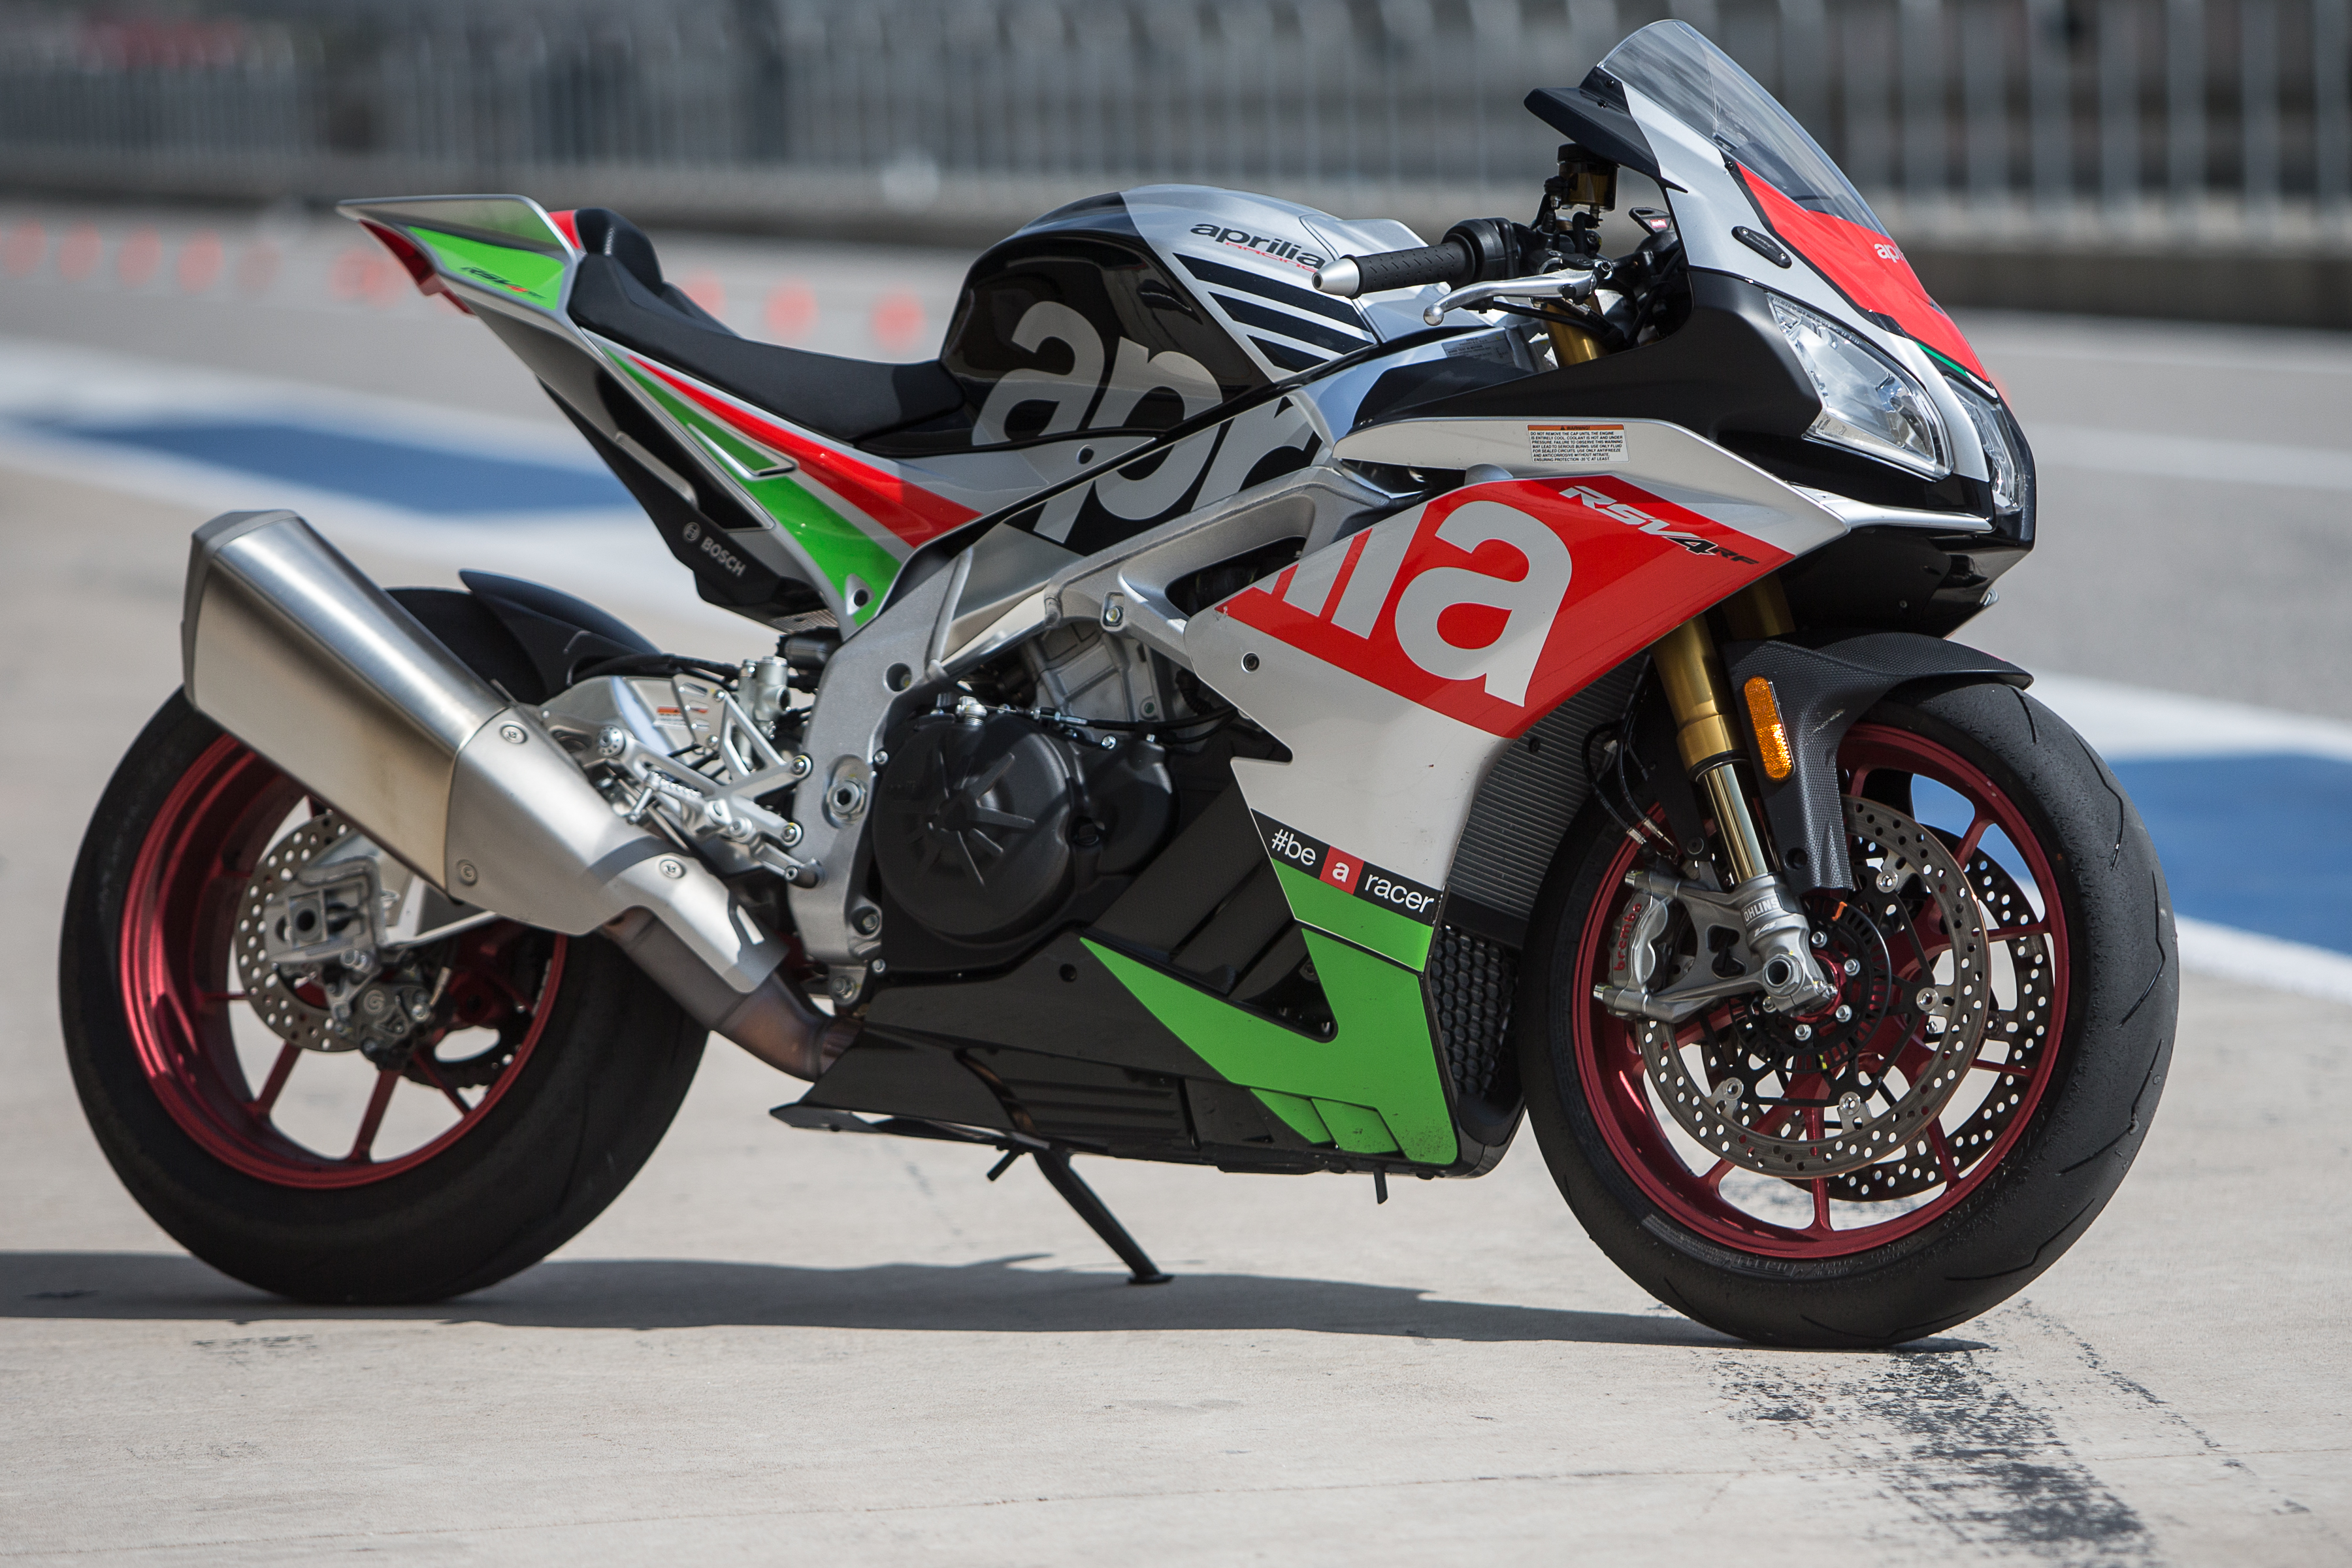 7 Ways The Aprilia RSV4 Changed The Game - Motorcycle.com